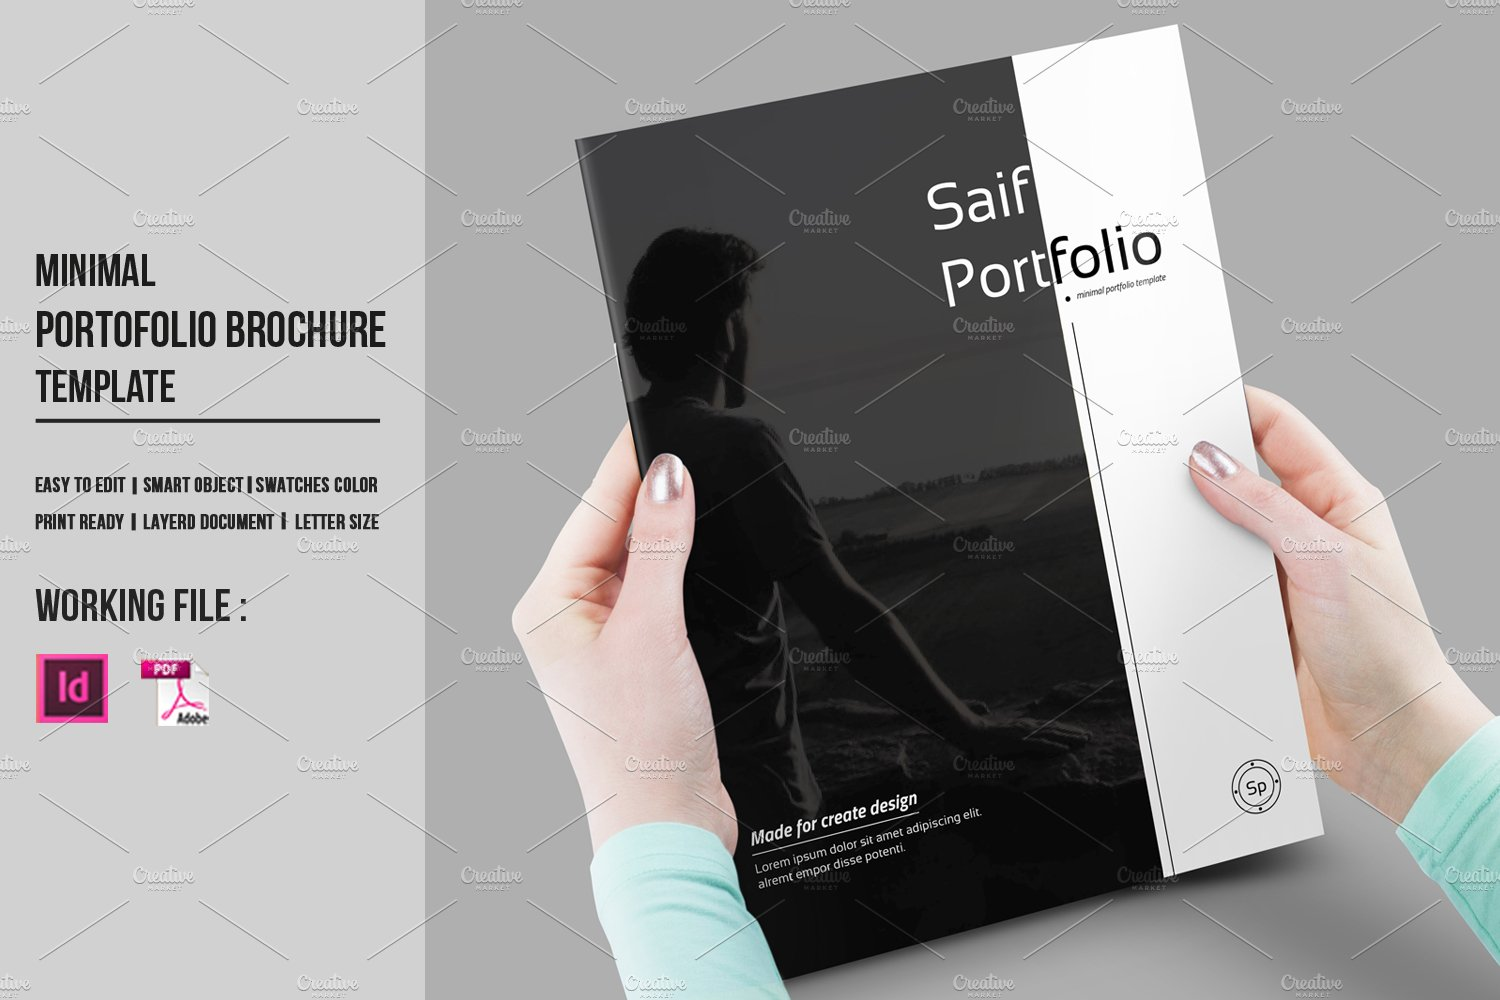 Indesign portfolio brochure v430 brochure templates for Graphic designer portfolio template free download